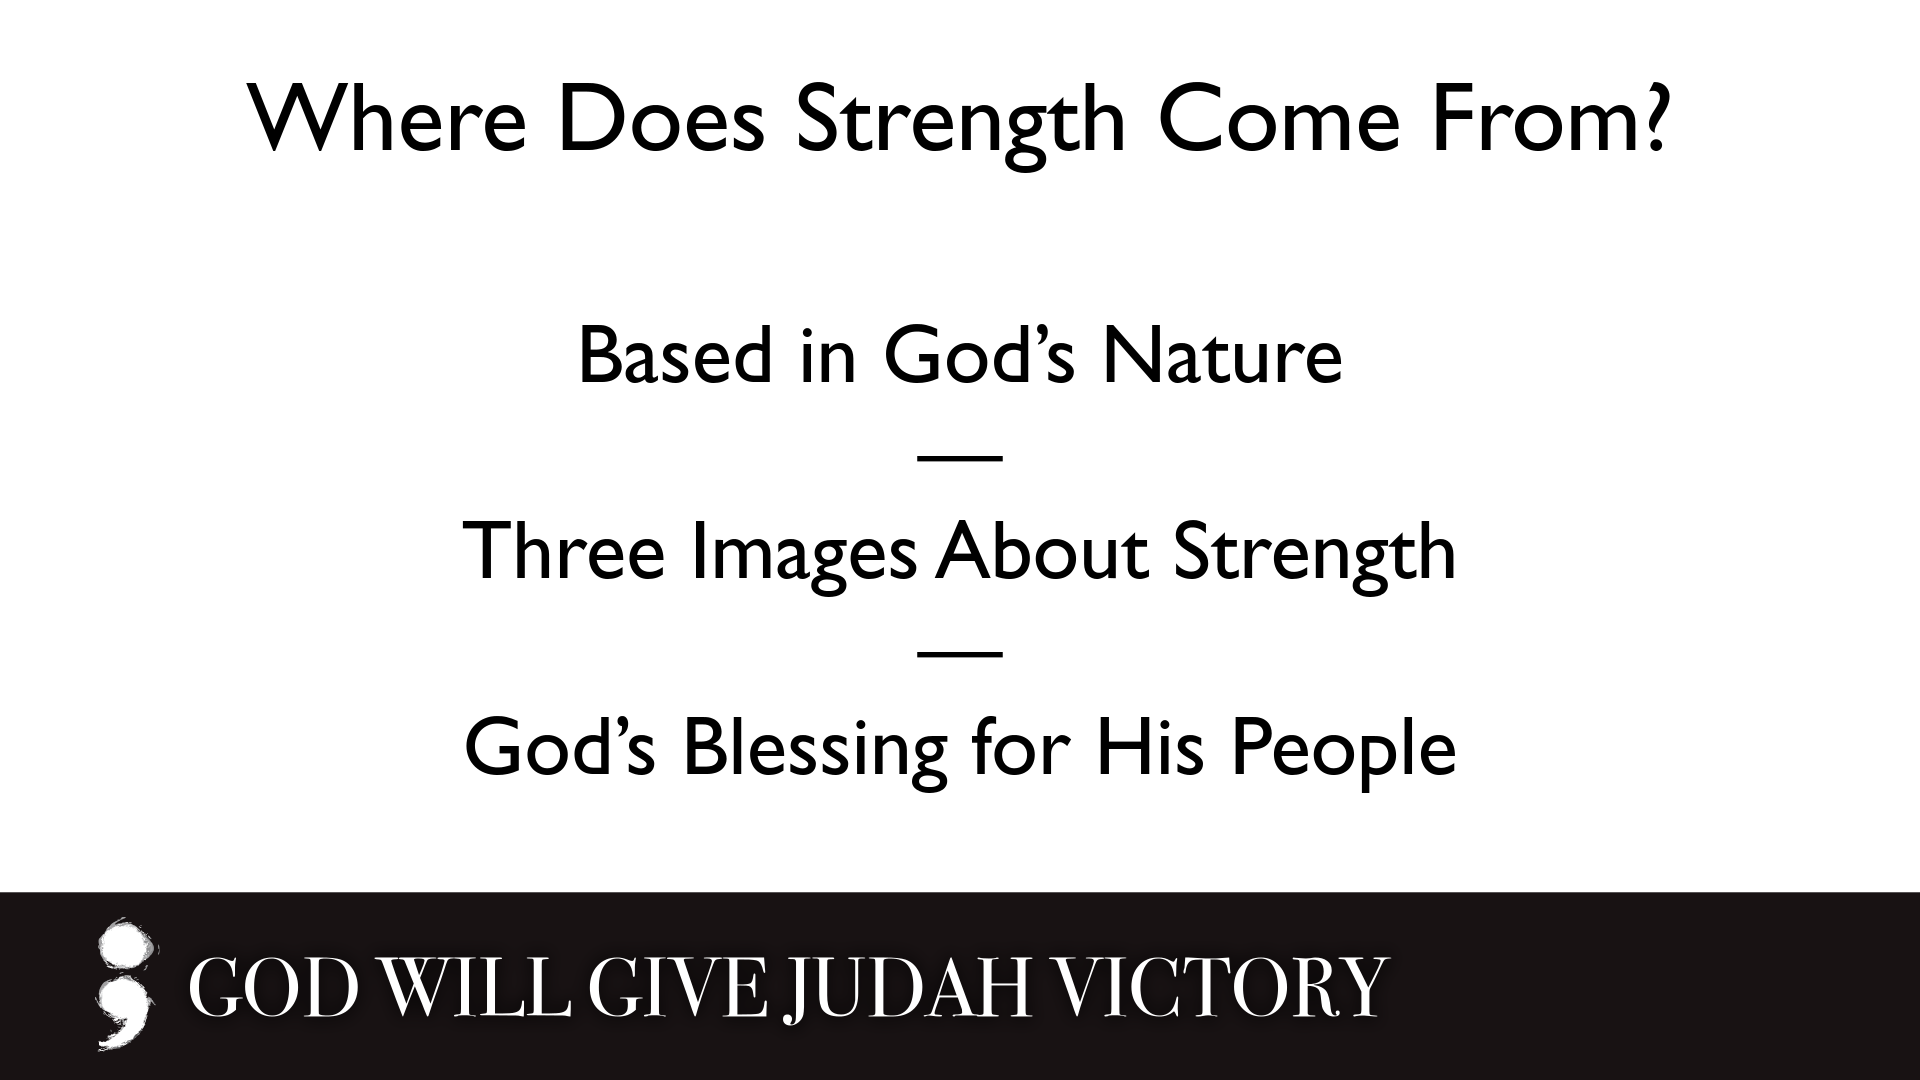 God Will Give Judah Victory.003.png